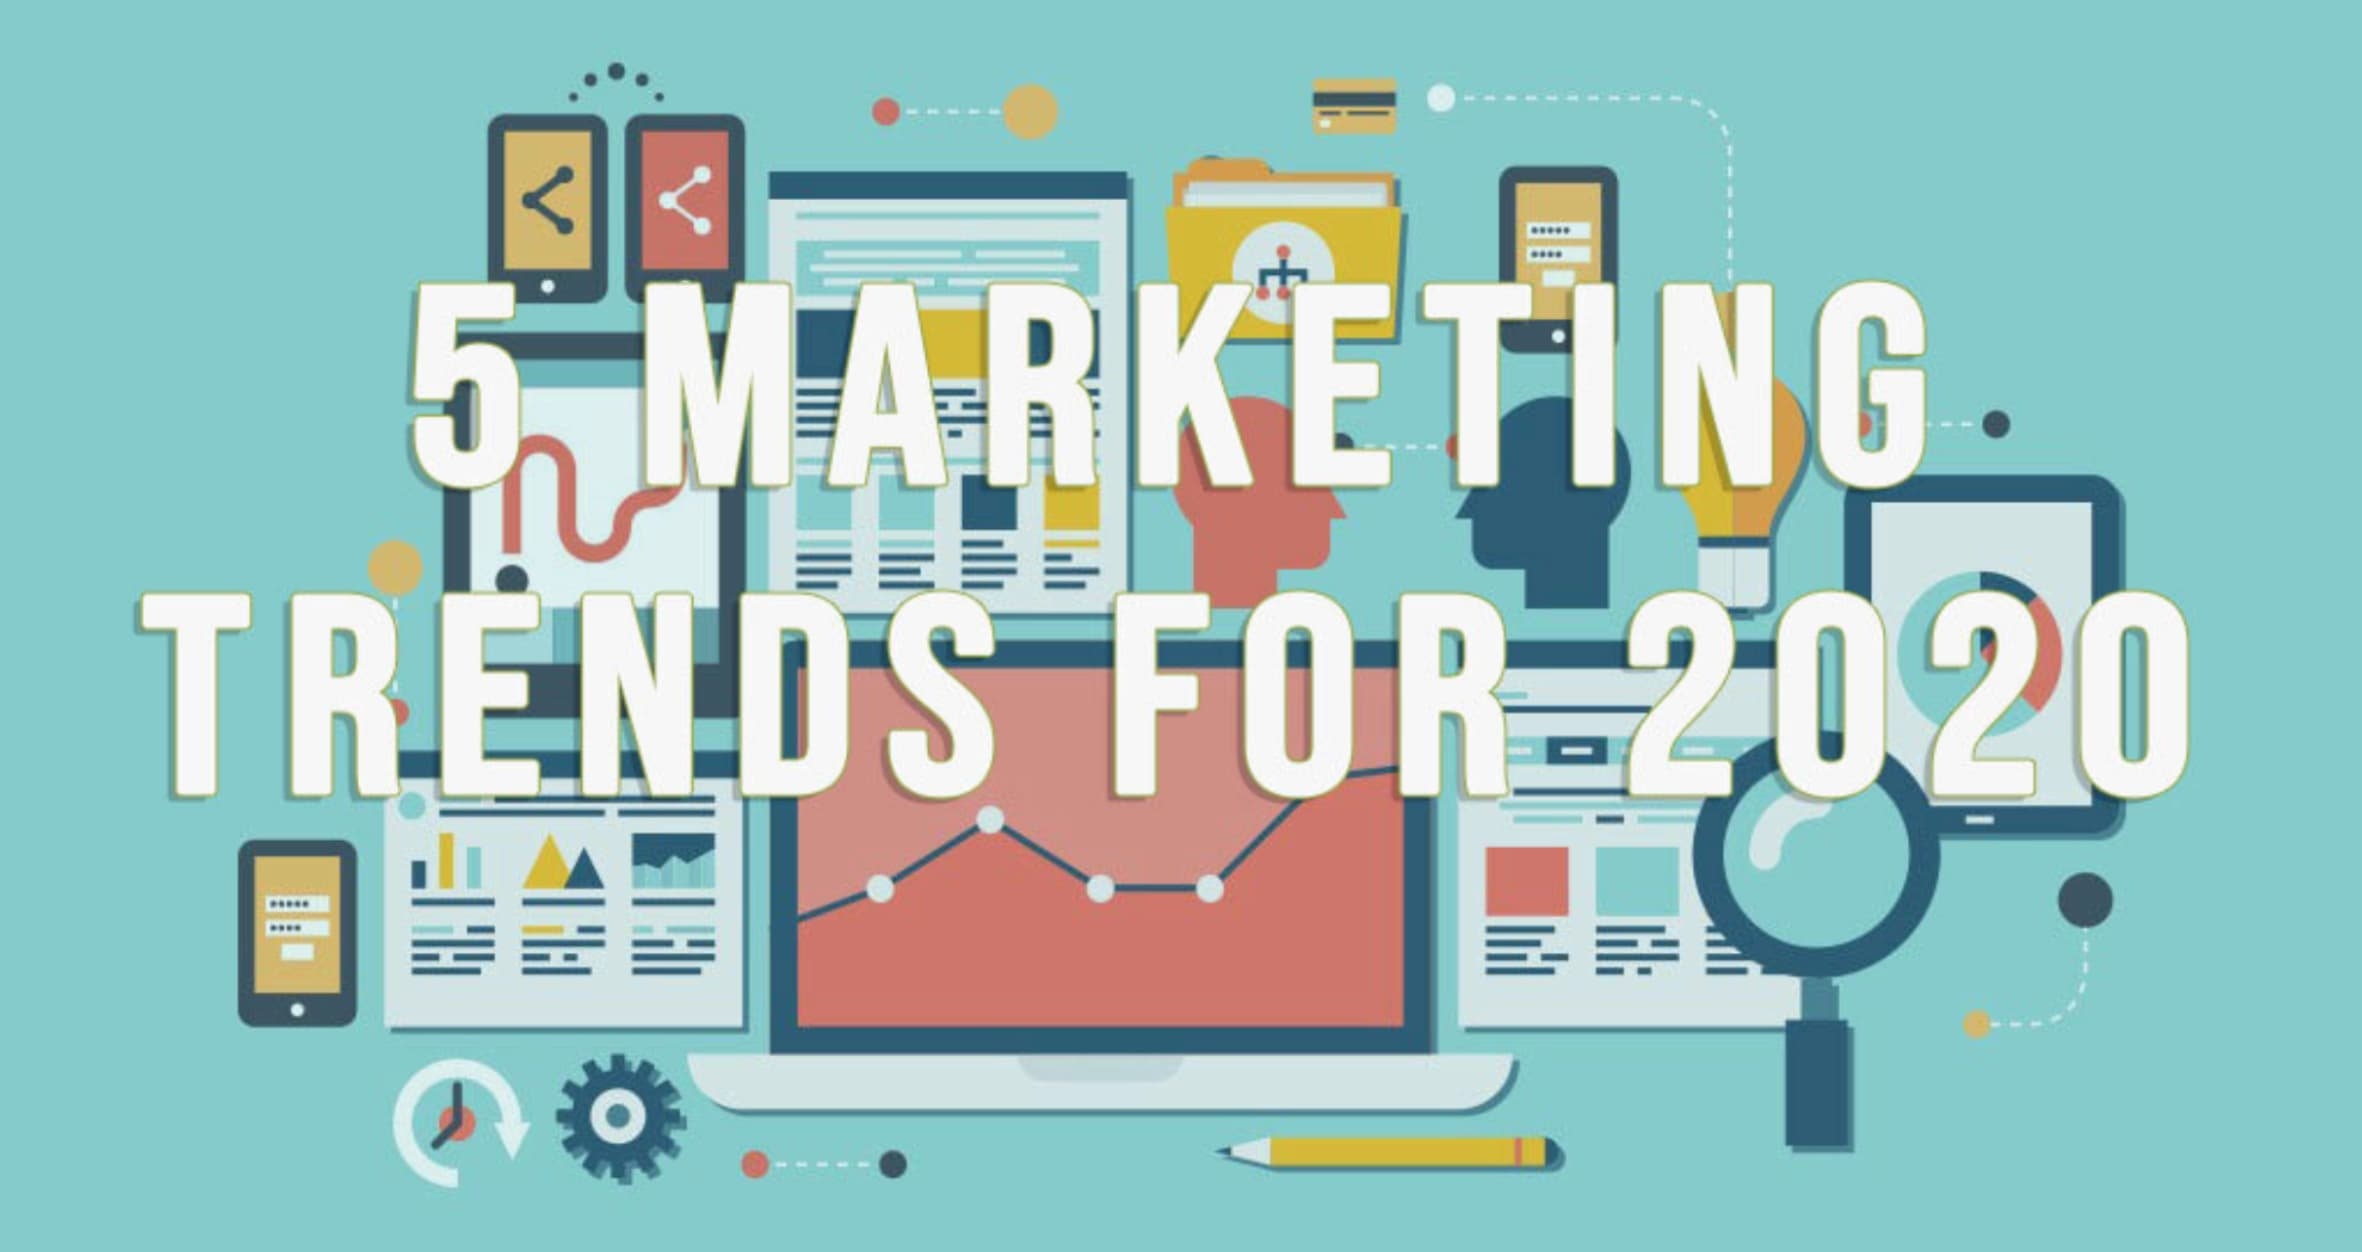 5 Marketing Trends for 2020